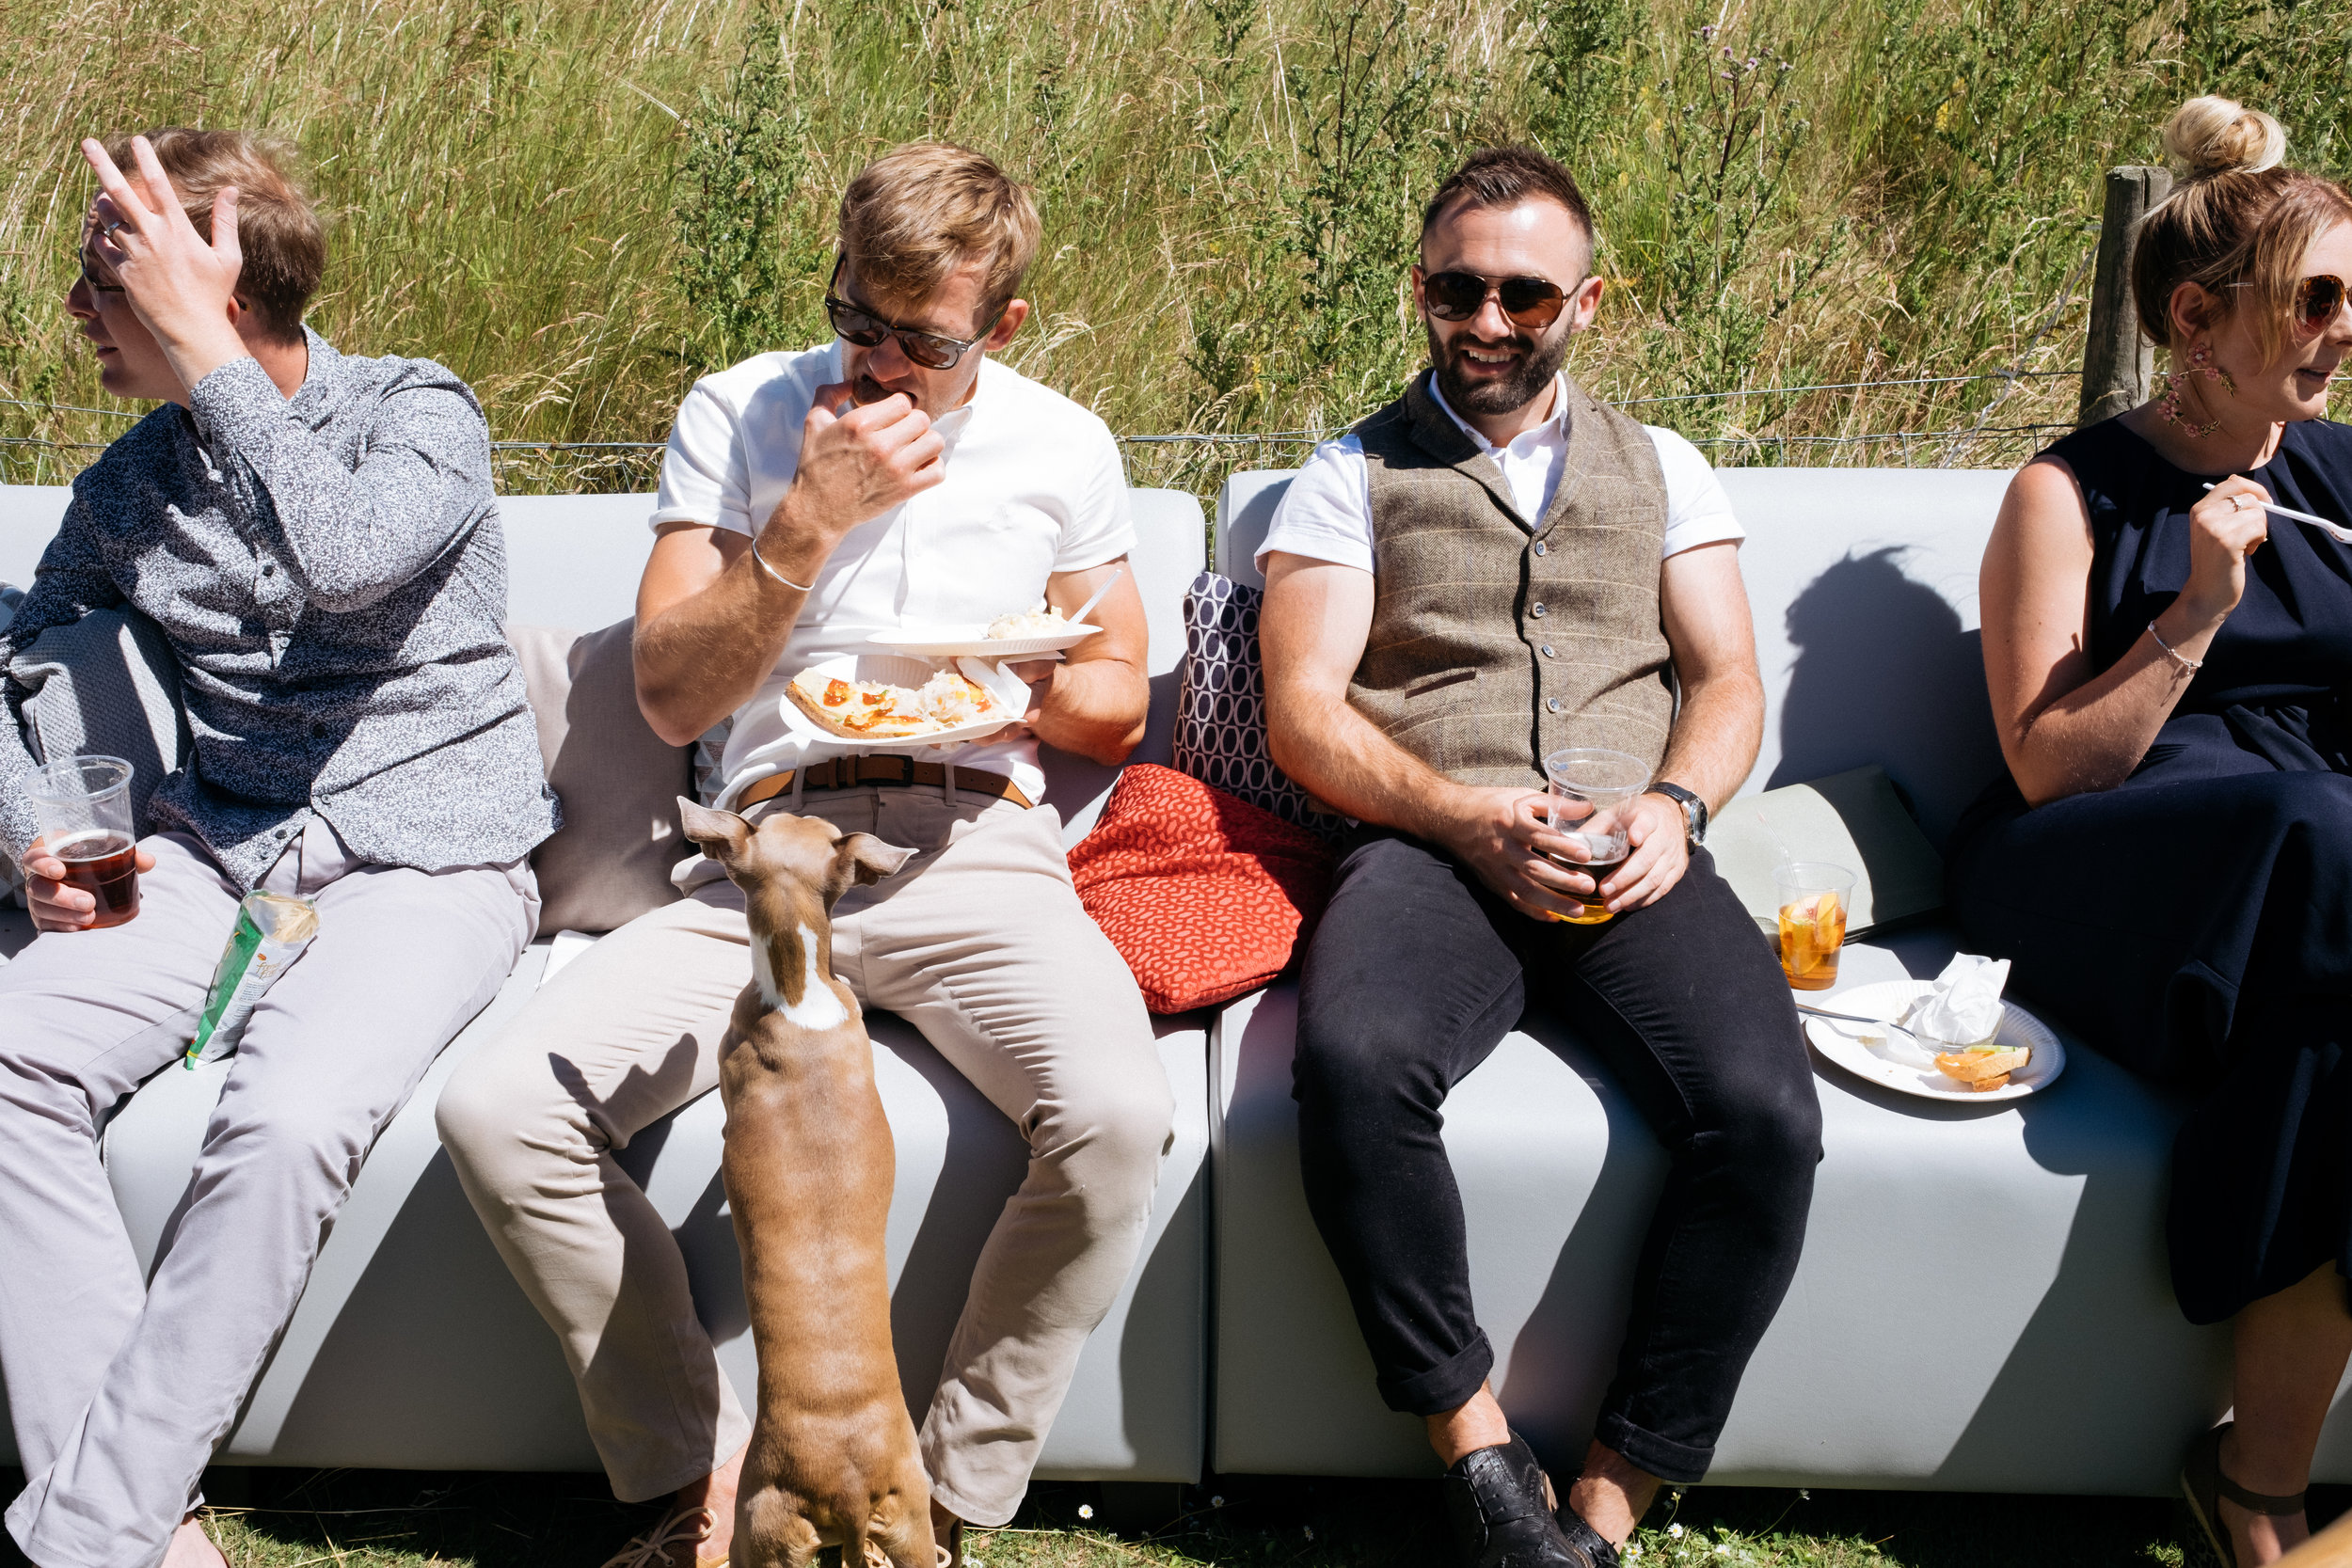 Groom eating while dog begs for food